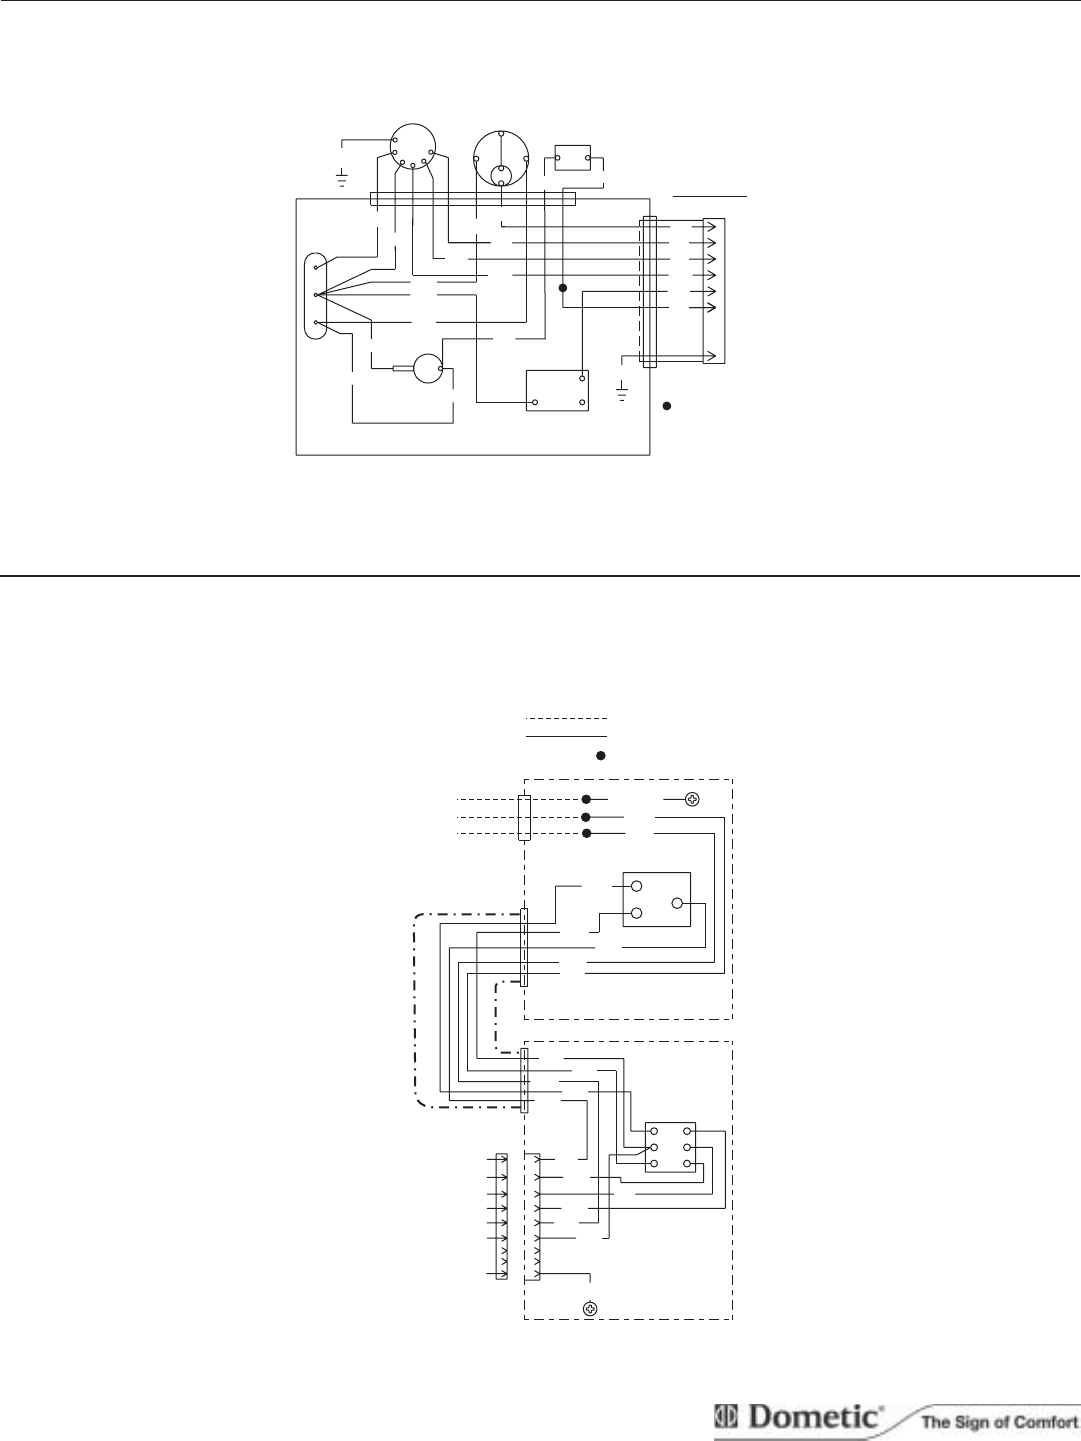 Taco Low Water Cut Off Wiring Diagram as well Furnace Gas Valve Wiring Diagram moreover Taco 502 Wiring Diagram Wiring Diagrams together with 10527 in addition Standing Pilot Furnace Wiring Diagram. on 2 wire zone valve wiring